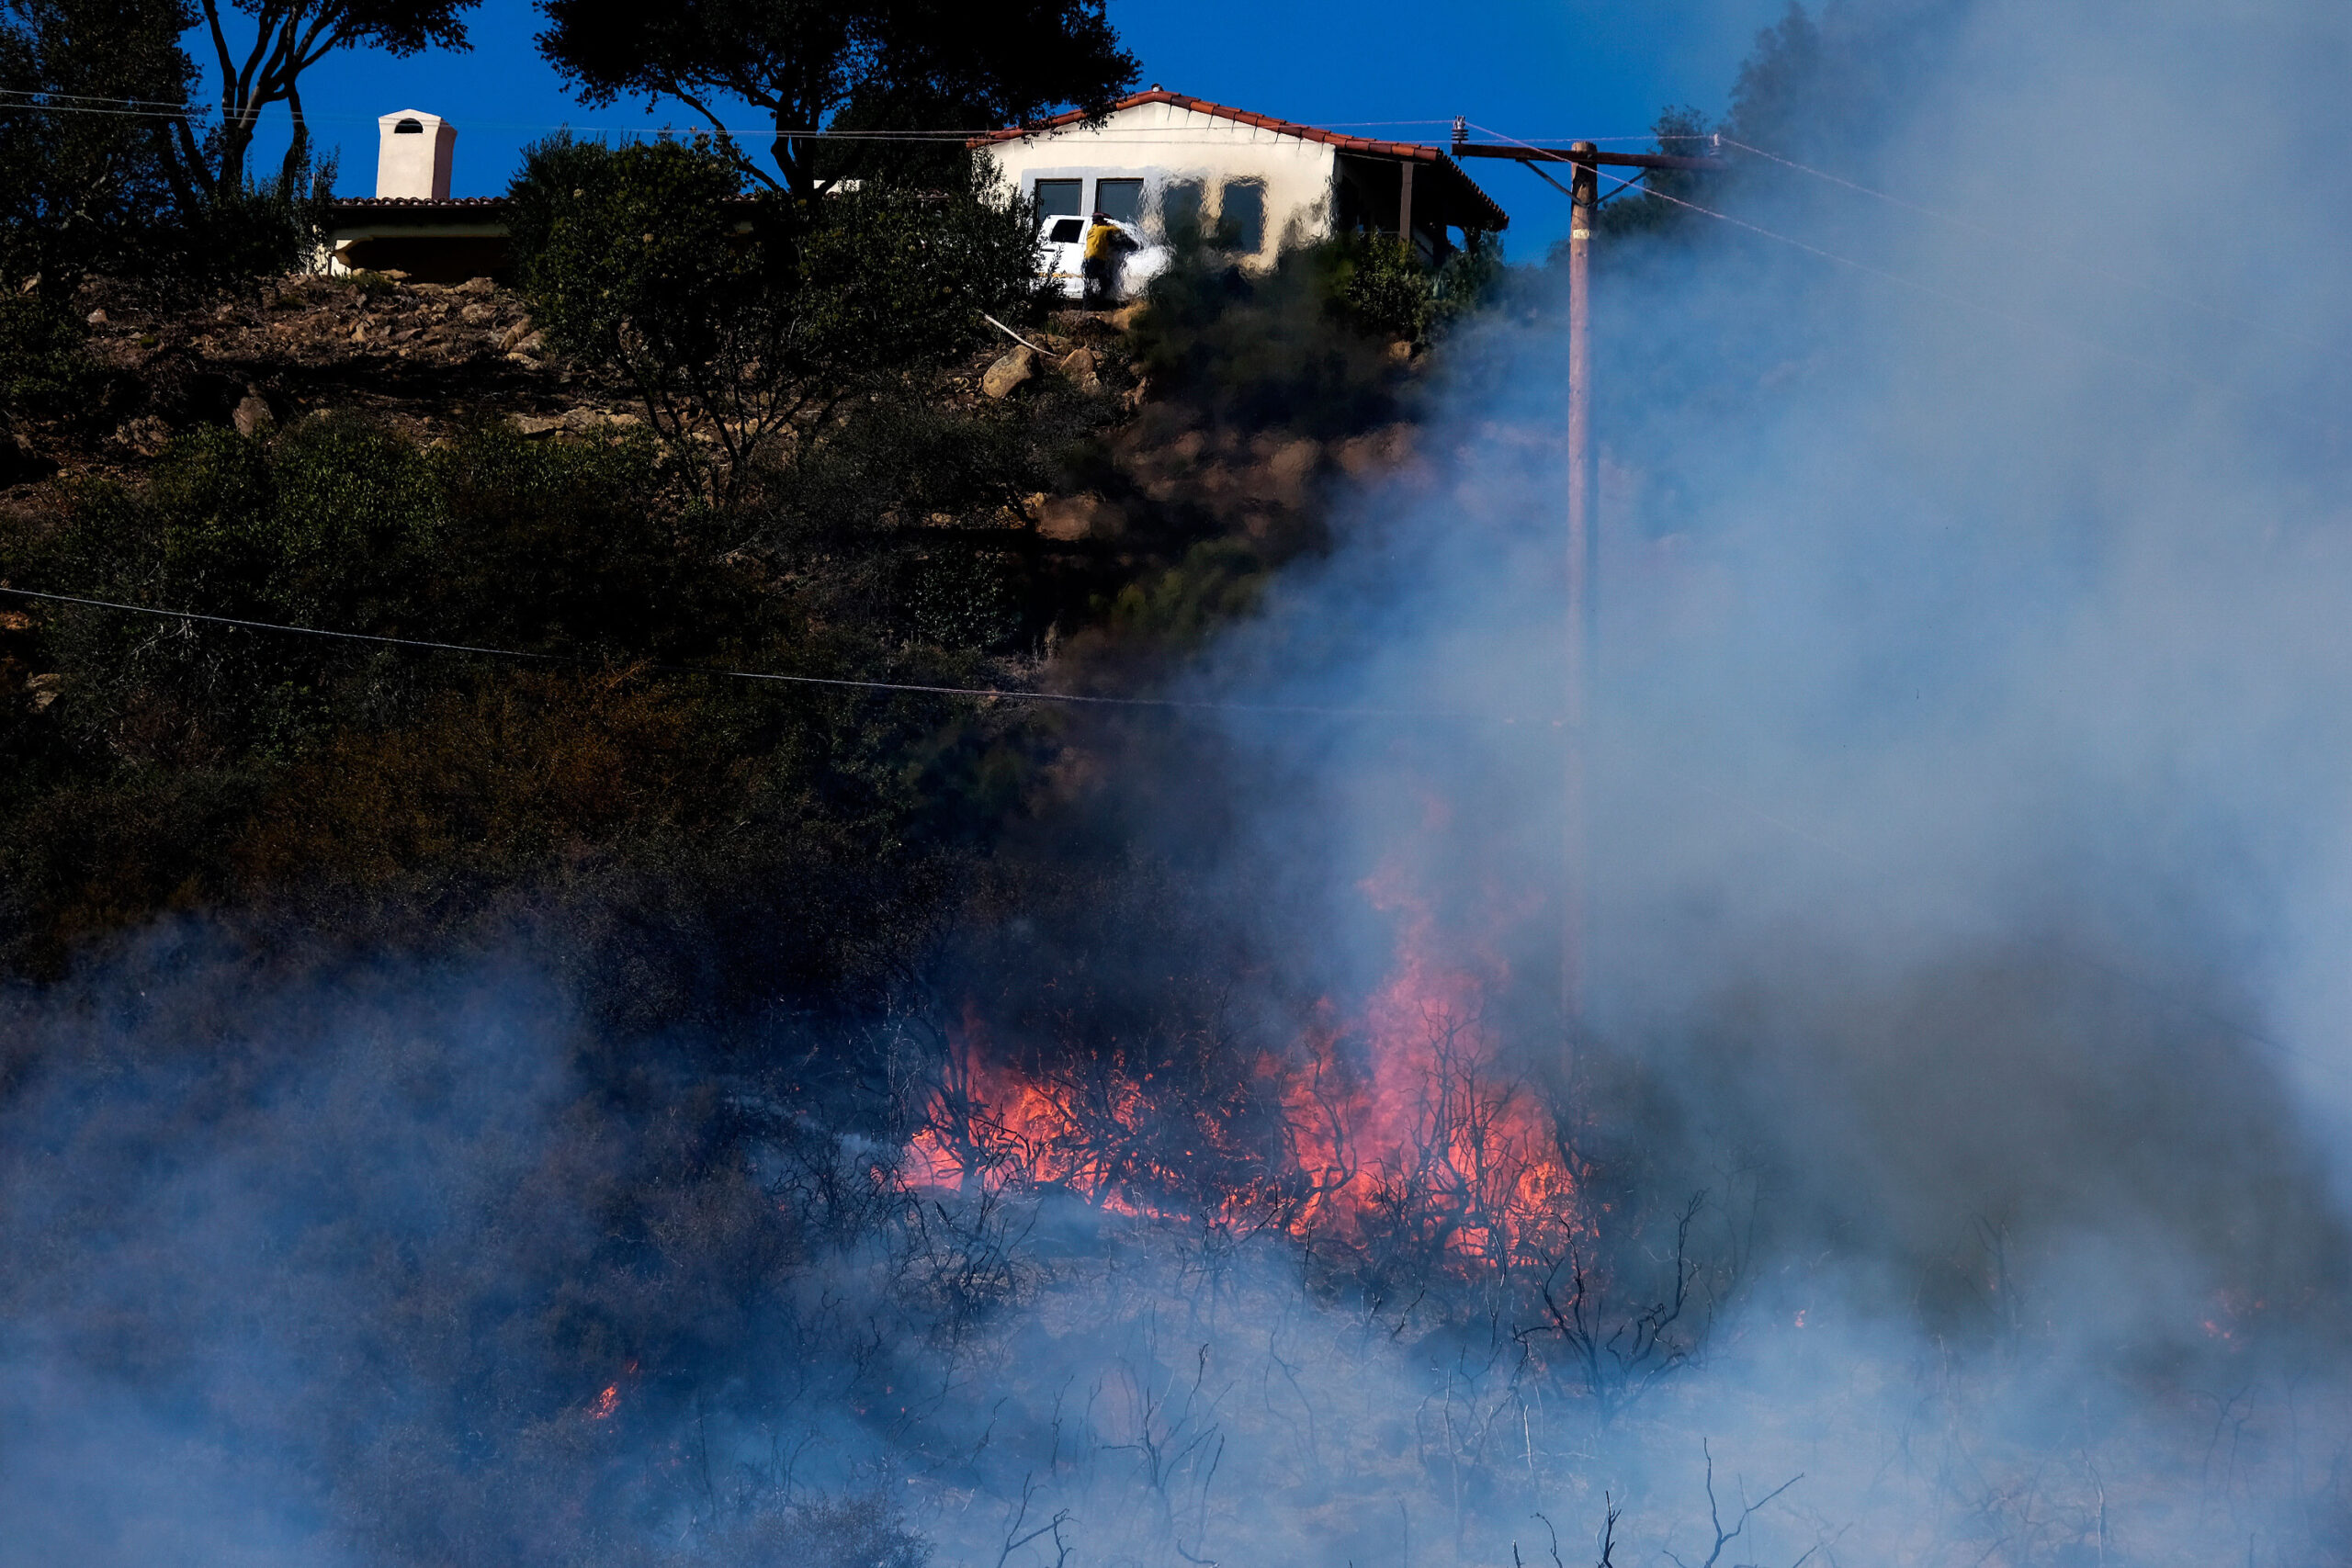 <i>Ringo H.W. Chiu/AP</i><br/>A wildfire raging through Southern California's coastal mountains threatened ranches and rural homes and kept a major highway shut down Wednesday as the fire-scarred state faced a new round of dry winds that raise risk of flames.